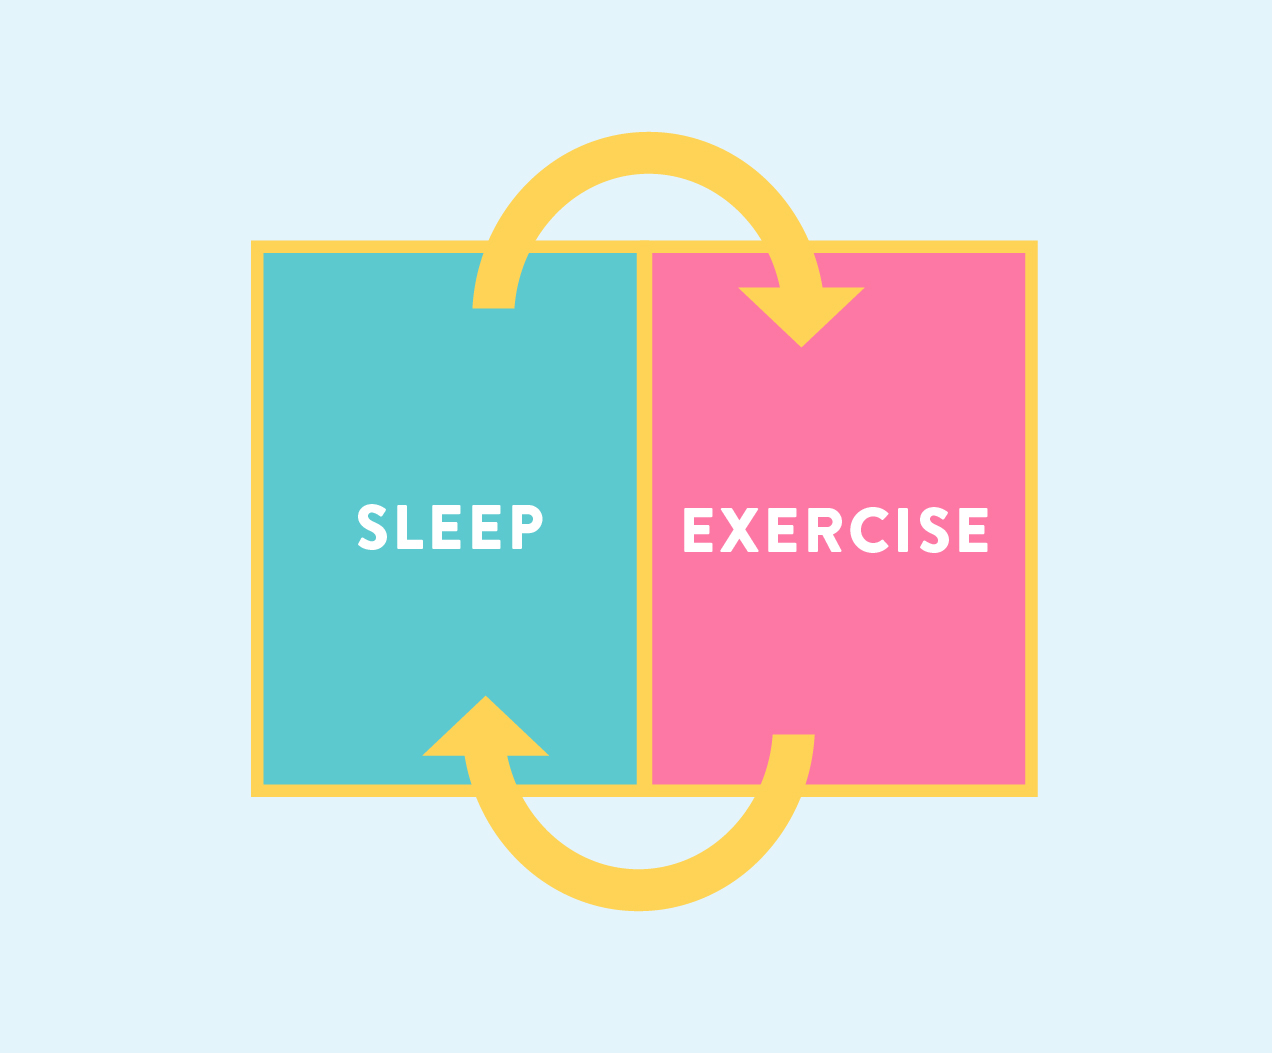 sleep and exercise